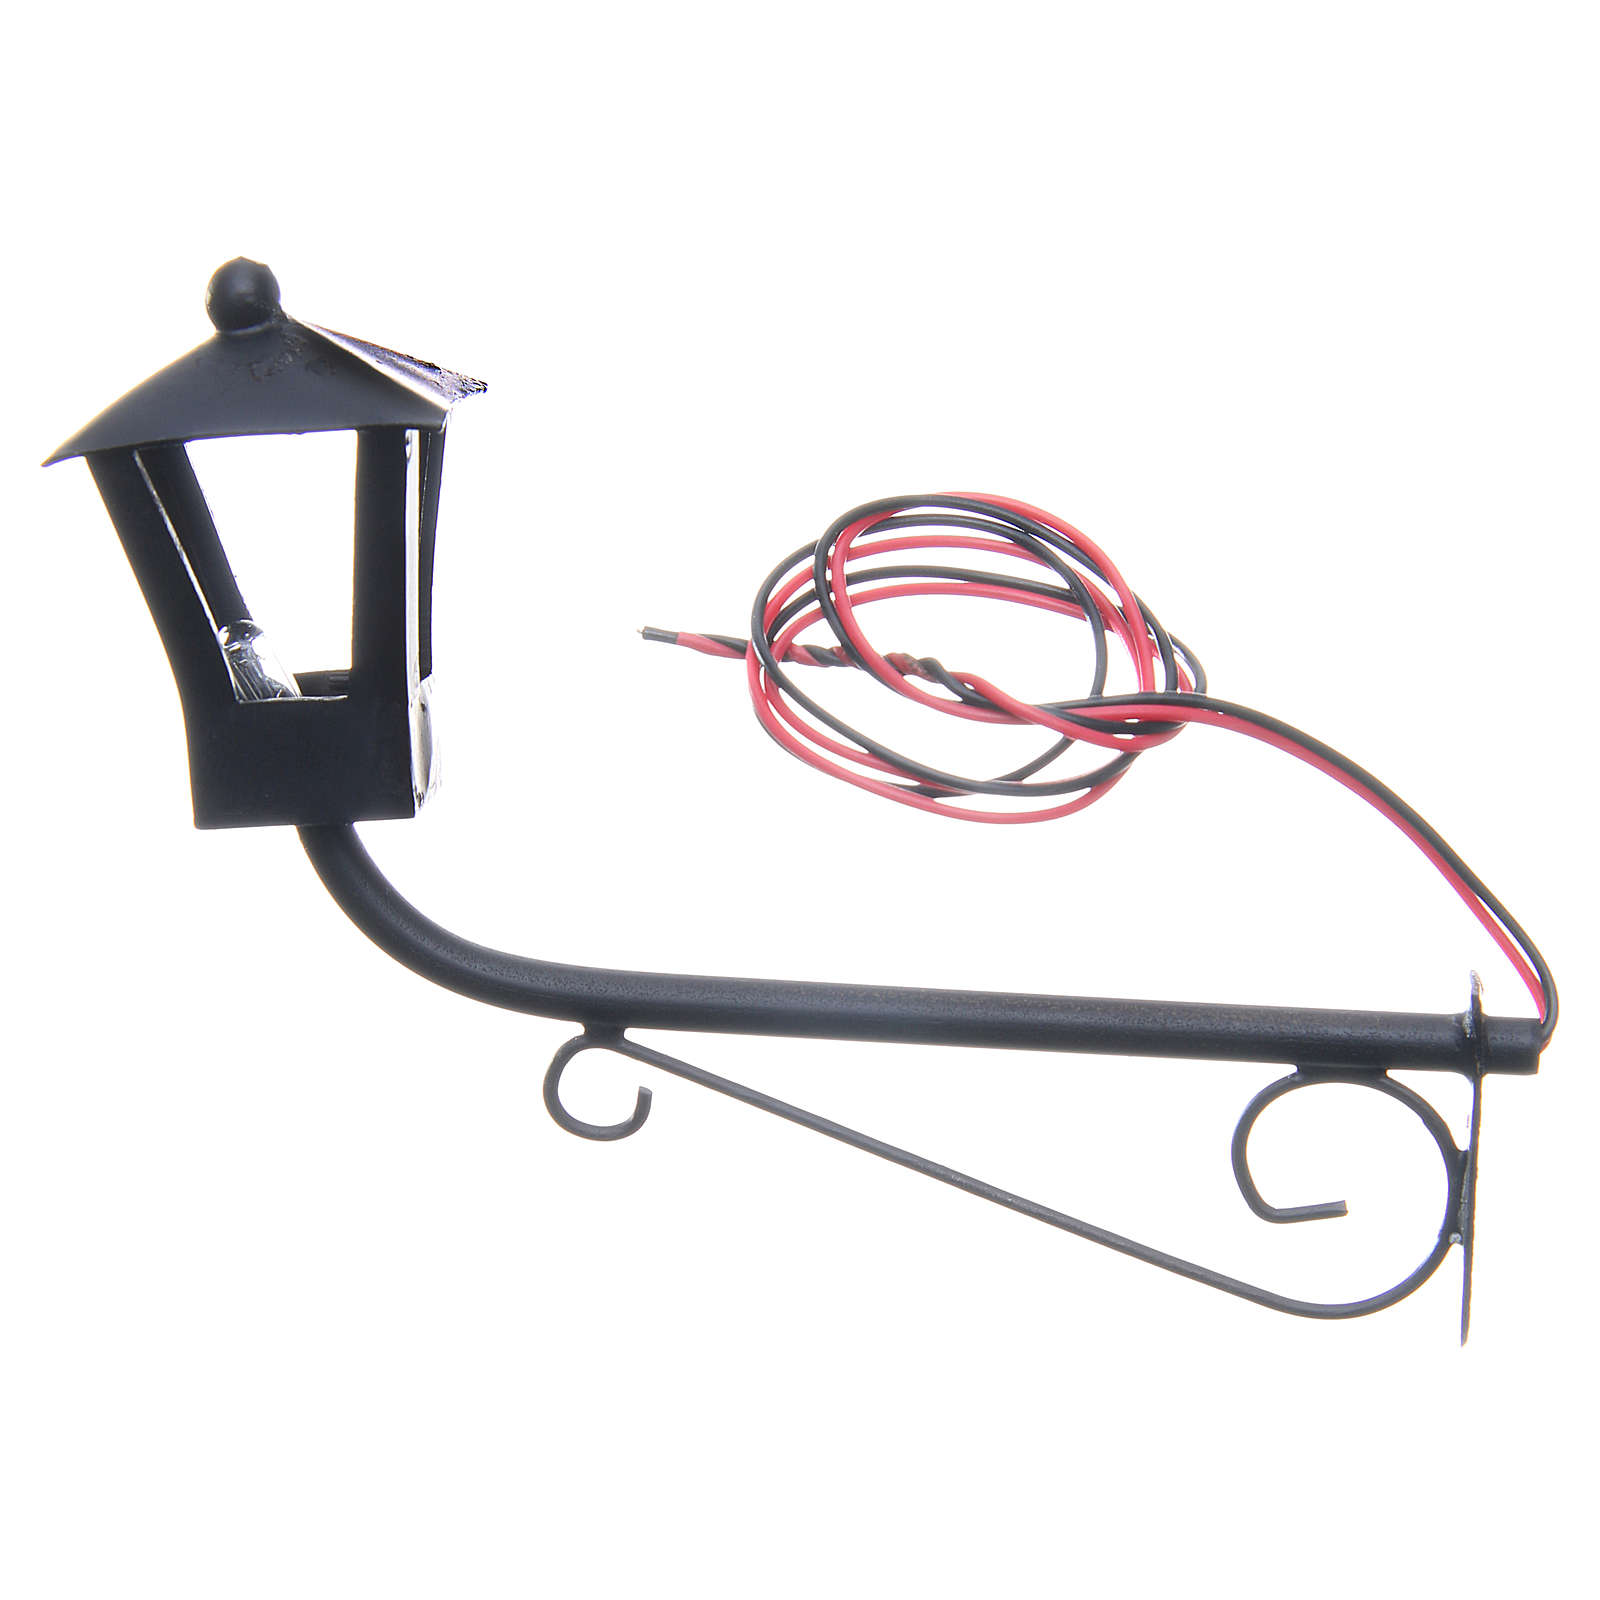 English style wall lamp curved upwards, 8x9cm for nativities 4